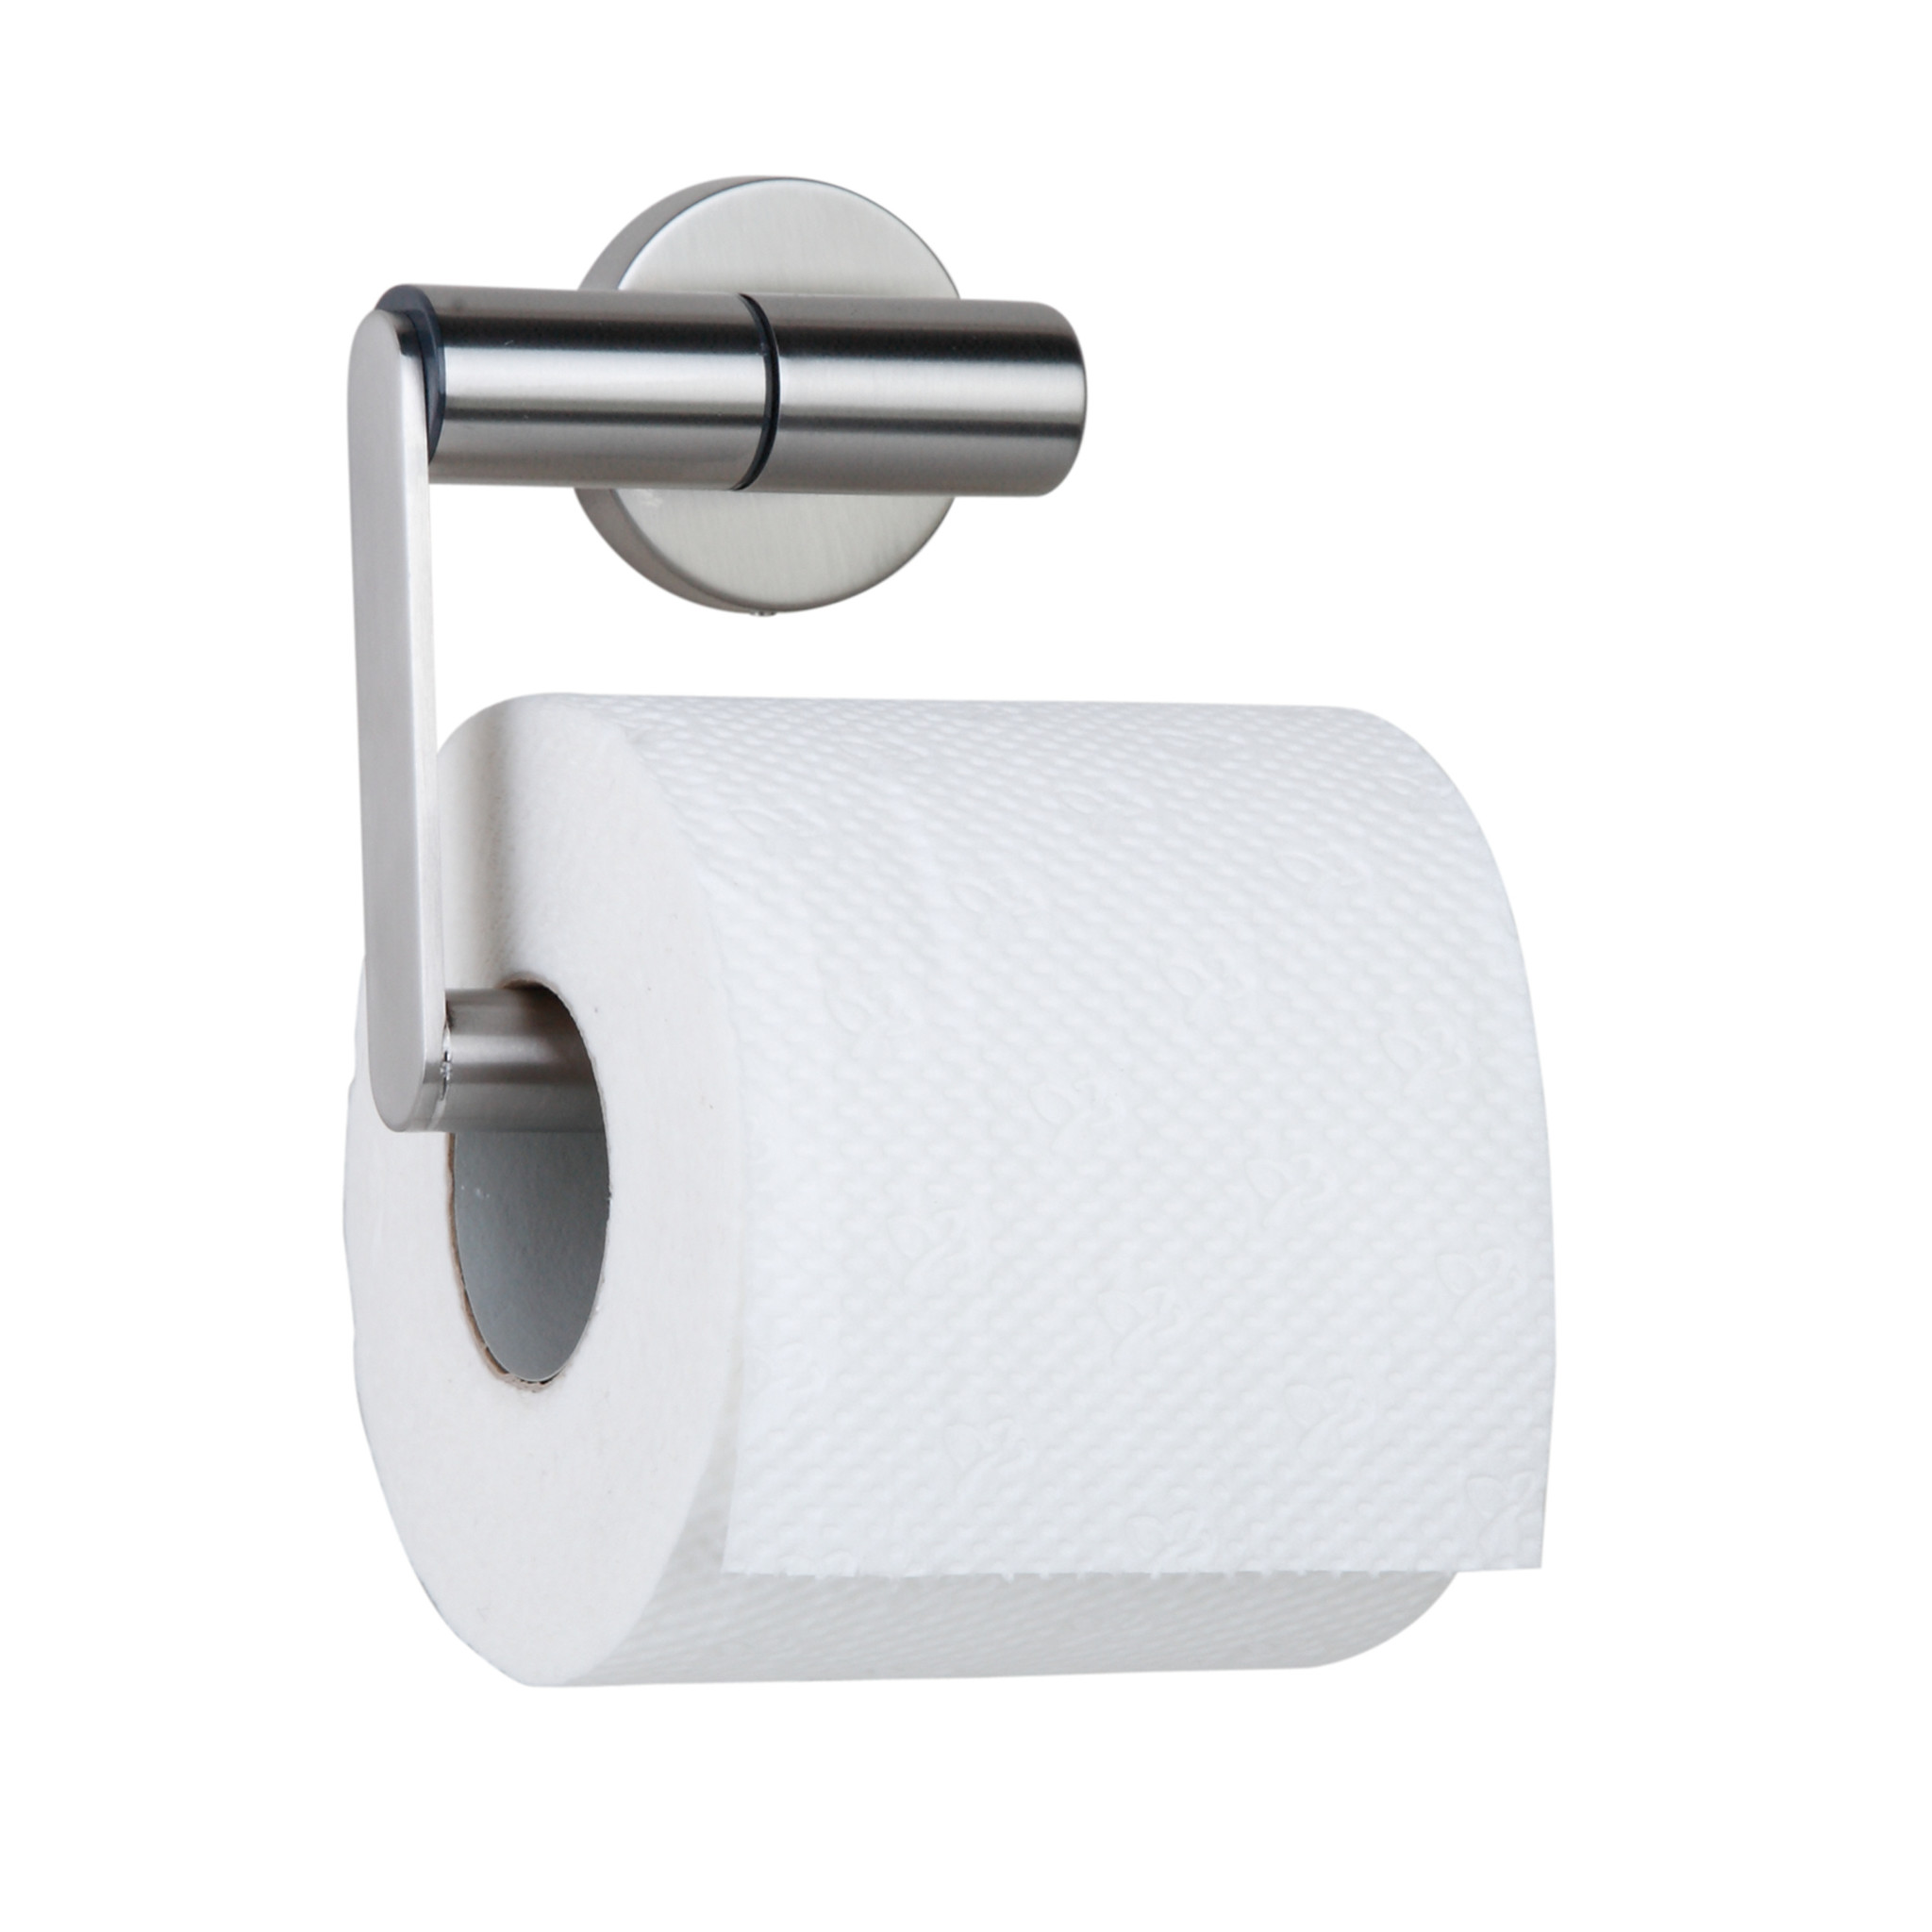 Tiger Boston Toilet Roll Holder Stainless Steel Brushed Afbeelding Vergroten